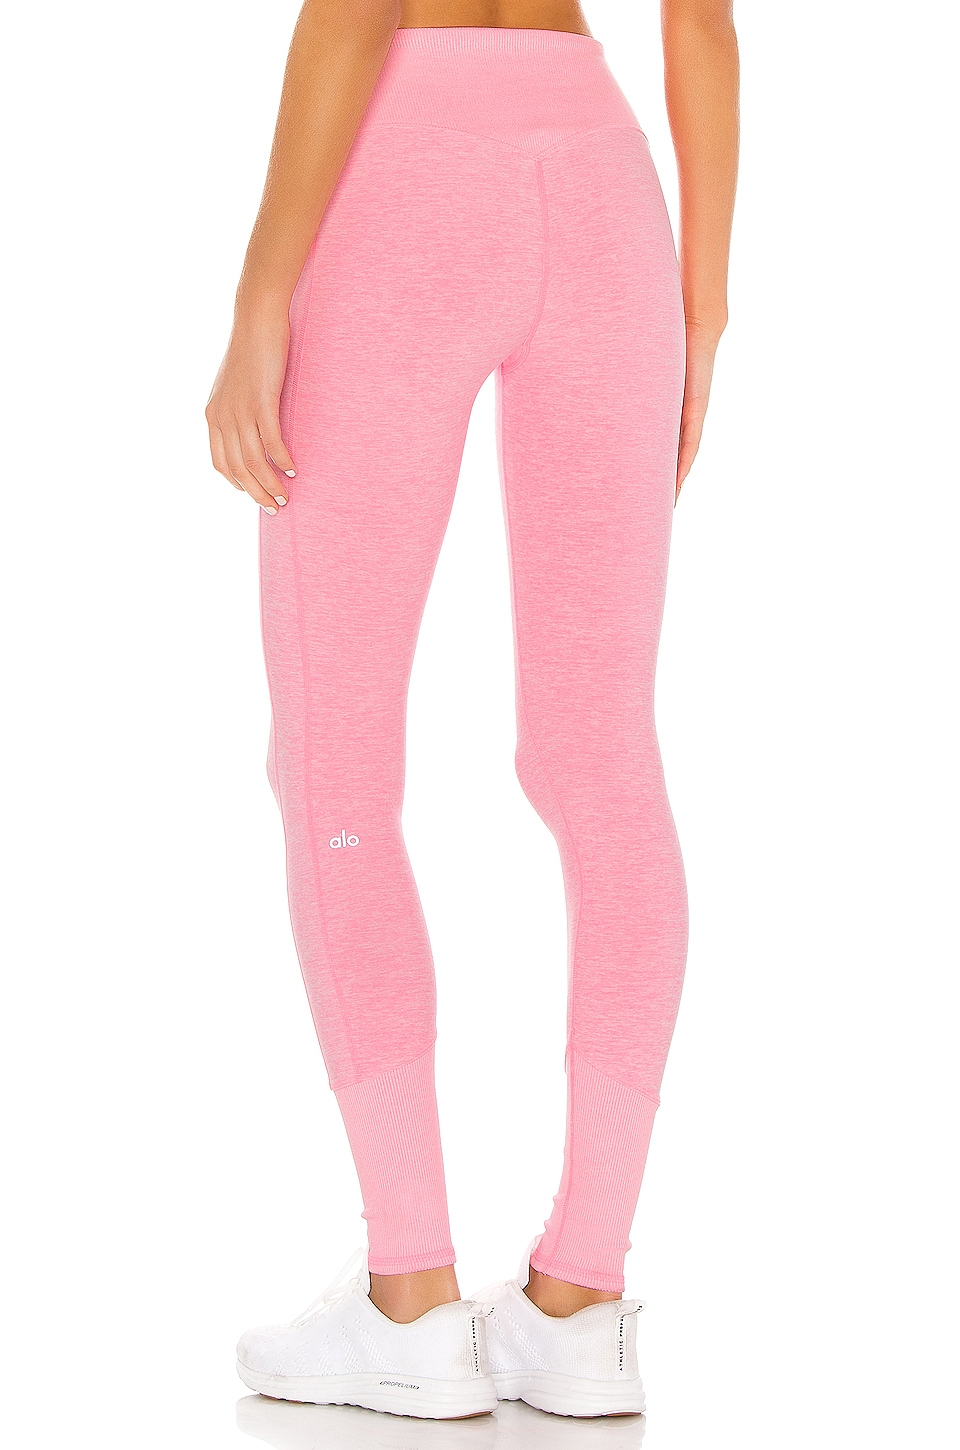 High Waist Lounge Legging, view 3, click to view large image.